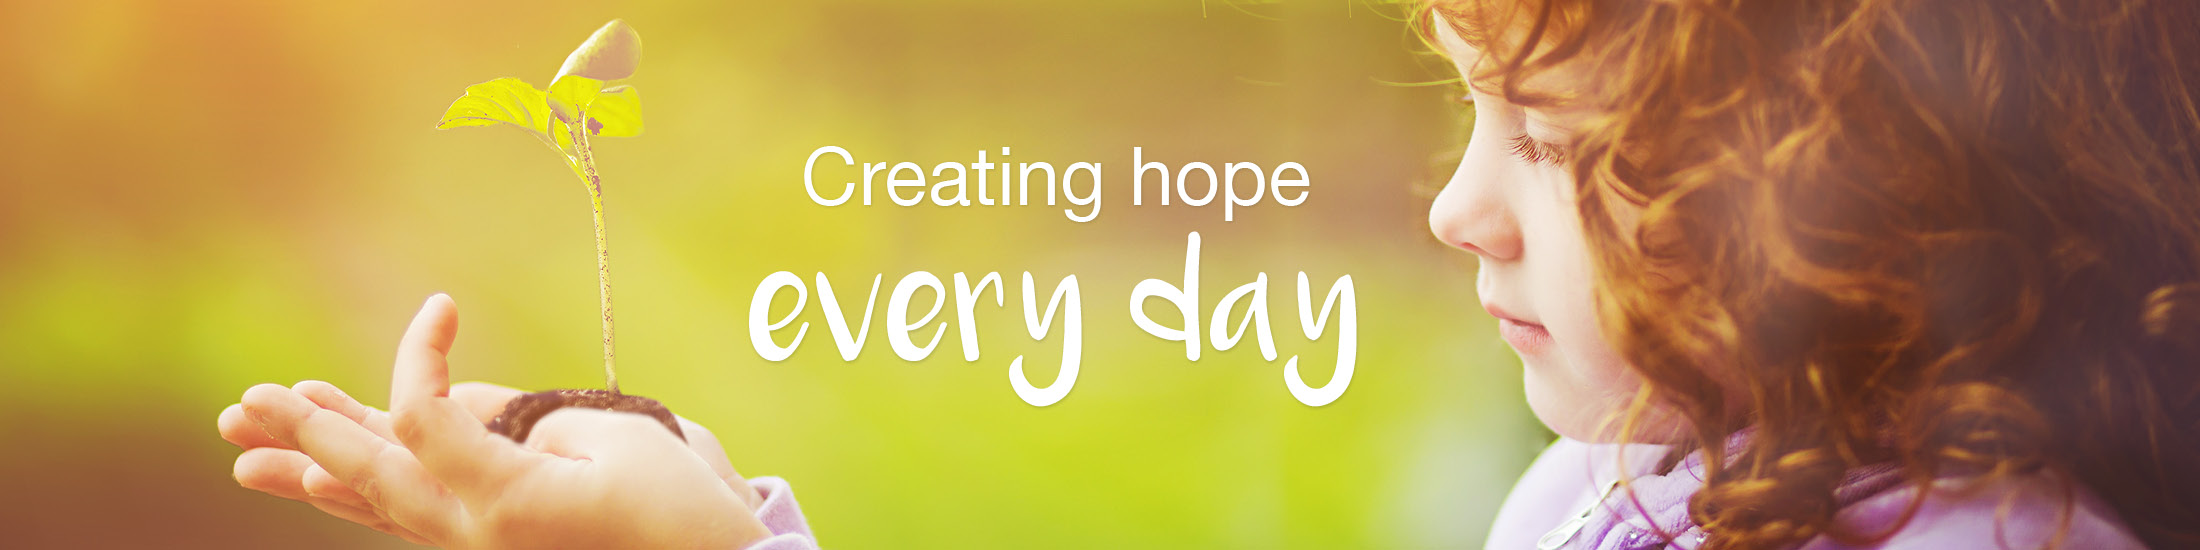 VM3715.1-MK-Creating-Hope-Foundation-Web-banner_1400x42311